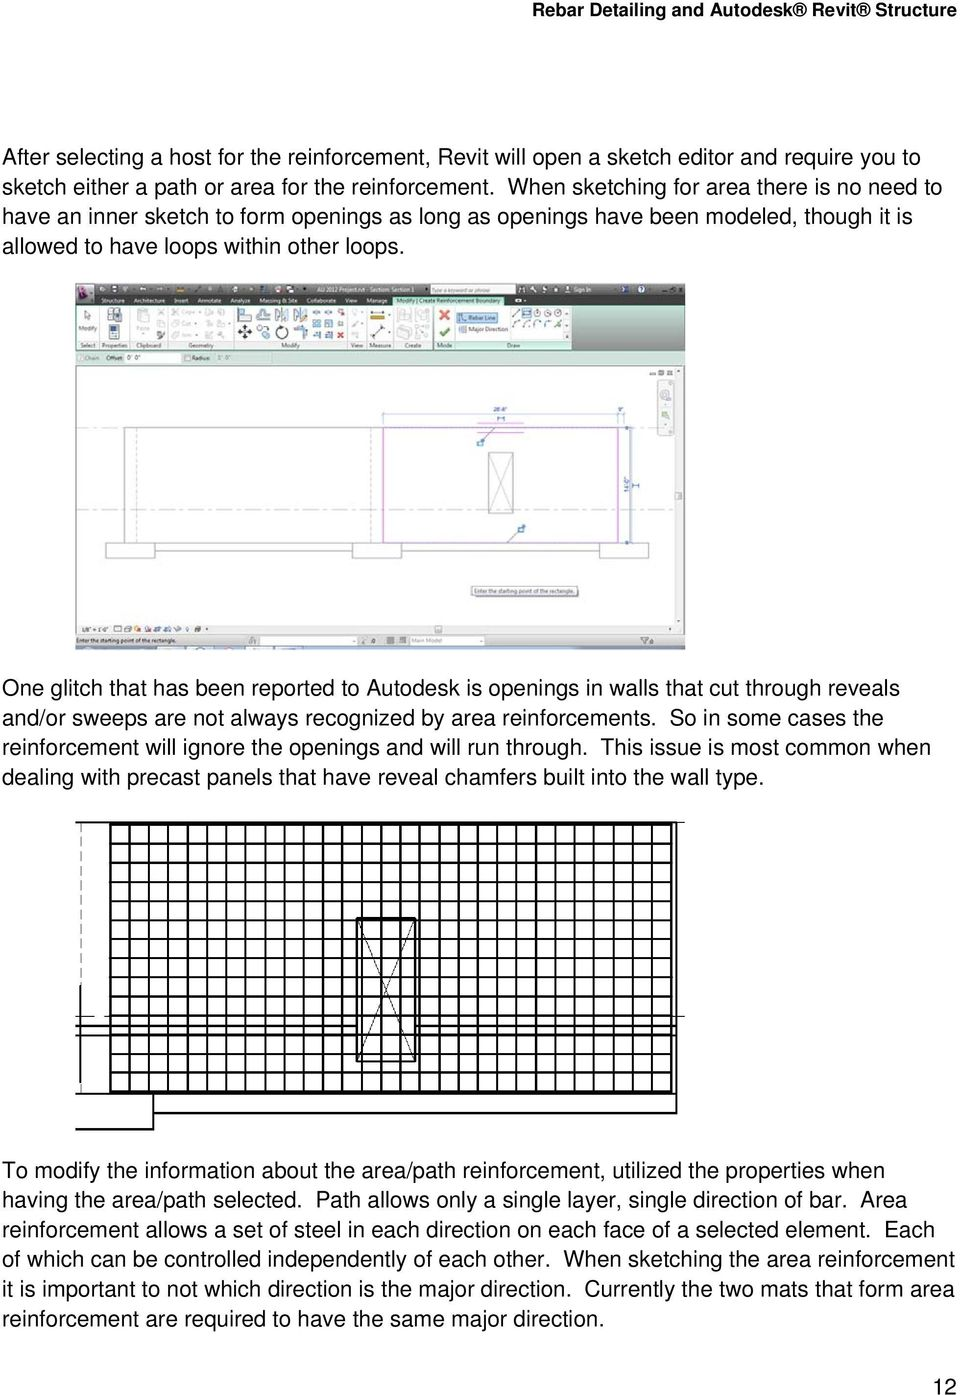 Rebar Detailing and Autodesk Revit Structure - PDF